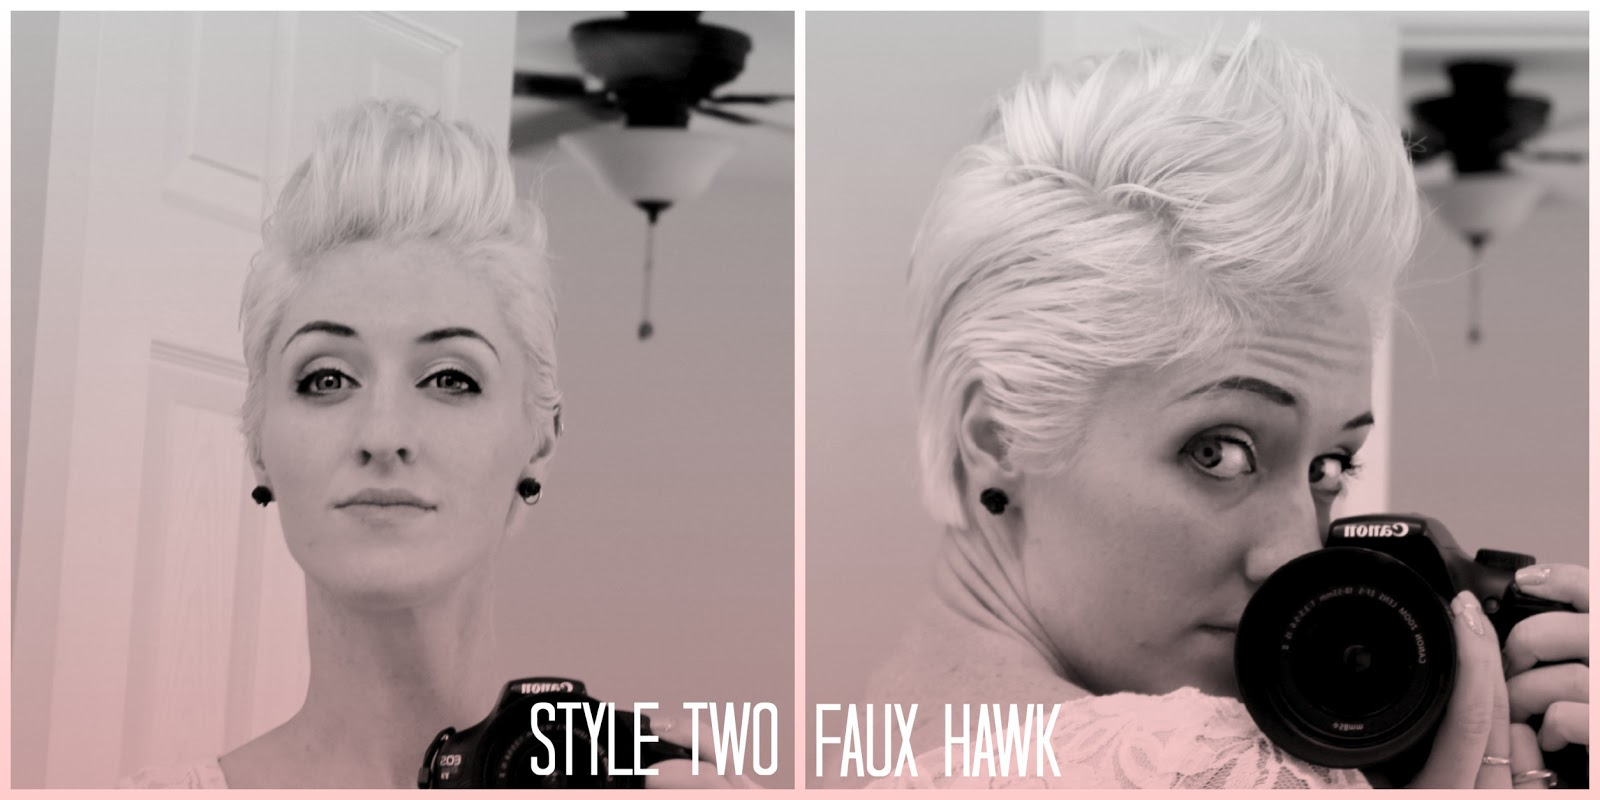 Remarkable The Crafty Woman Style Two Faux Hawk Short Hairstyles For Black Women Fulllsitofus